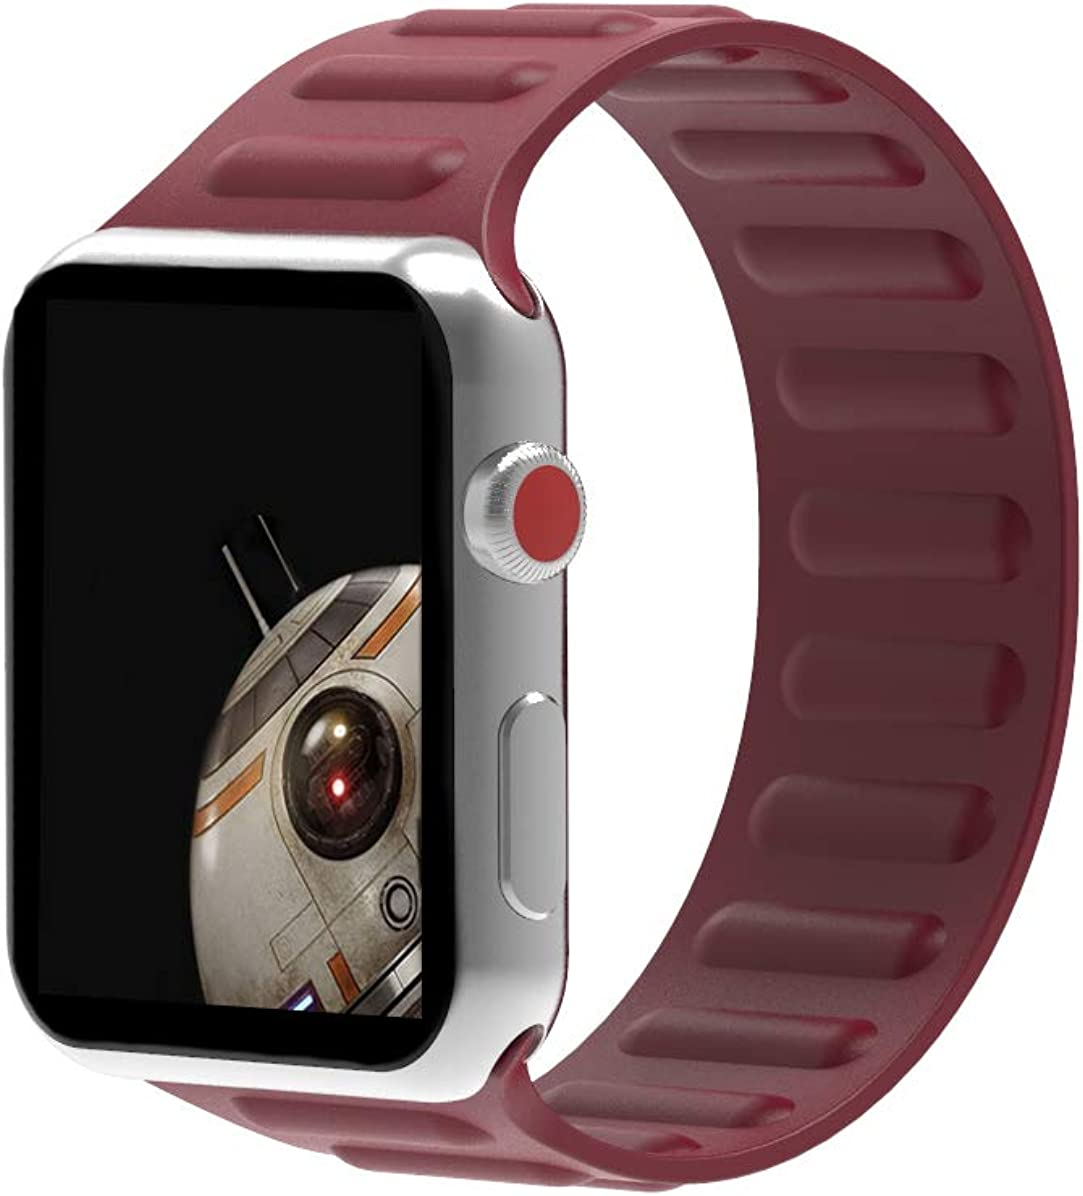 Solo Loop Stretchy Silicone Sports Replacement Strap Band Compatible With Apple Watch Series 6/5/4/3/2/1/SE Universal 38mm 40mm 42mm 44mm